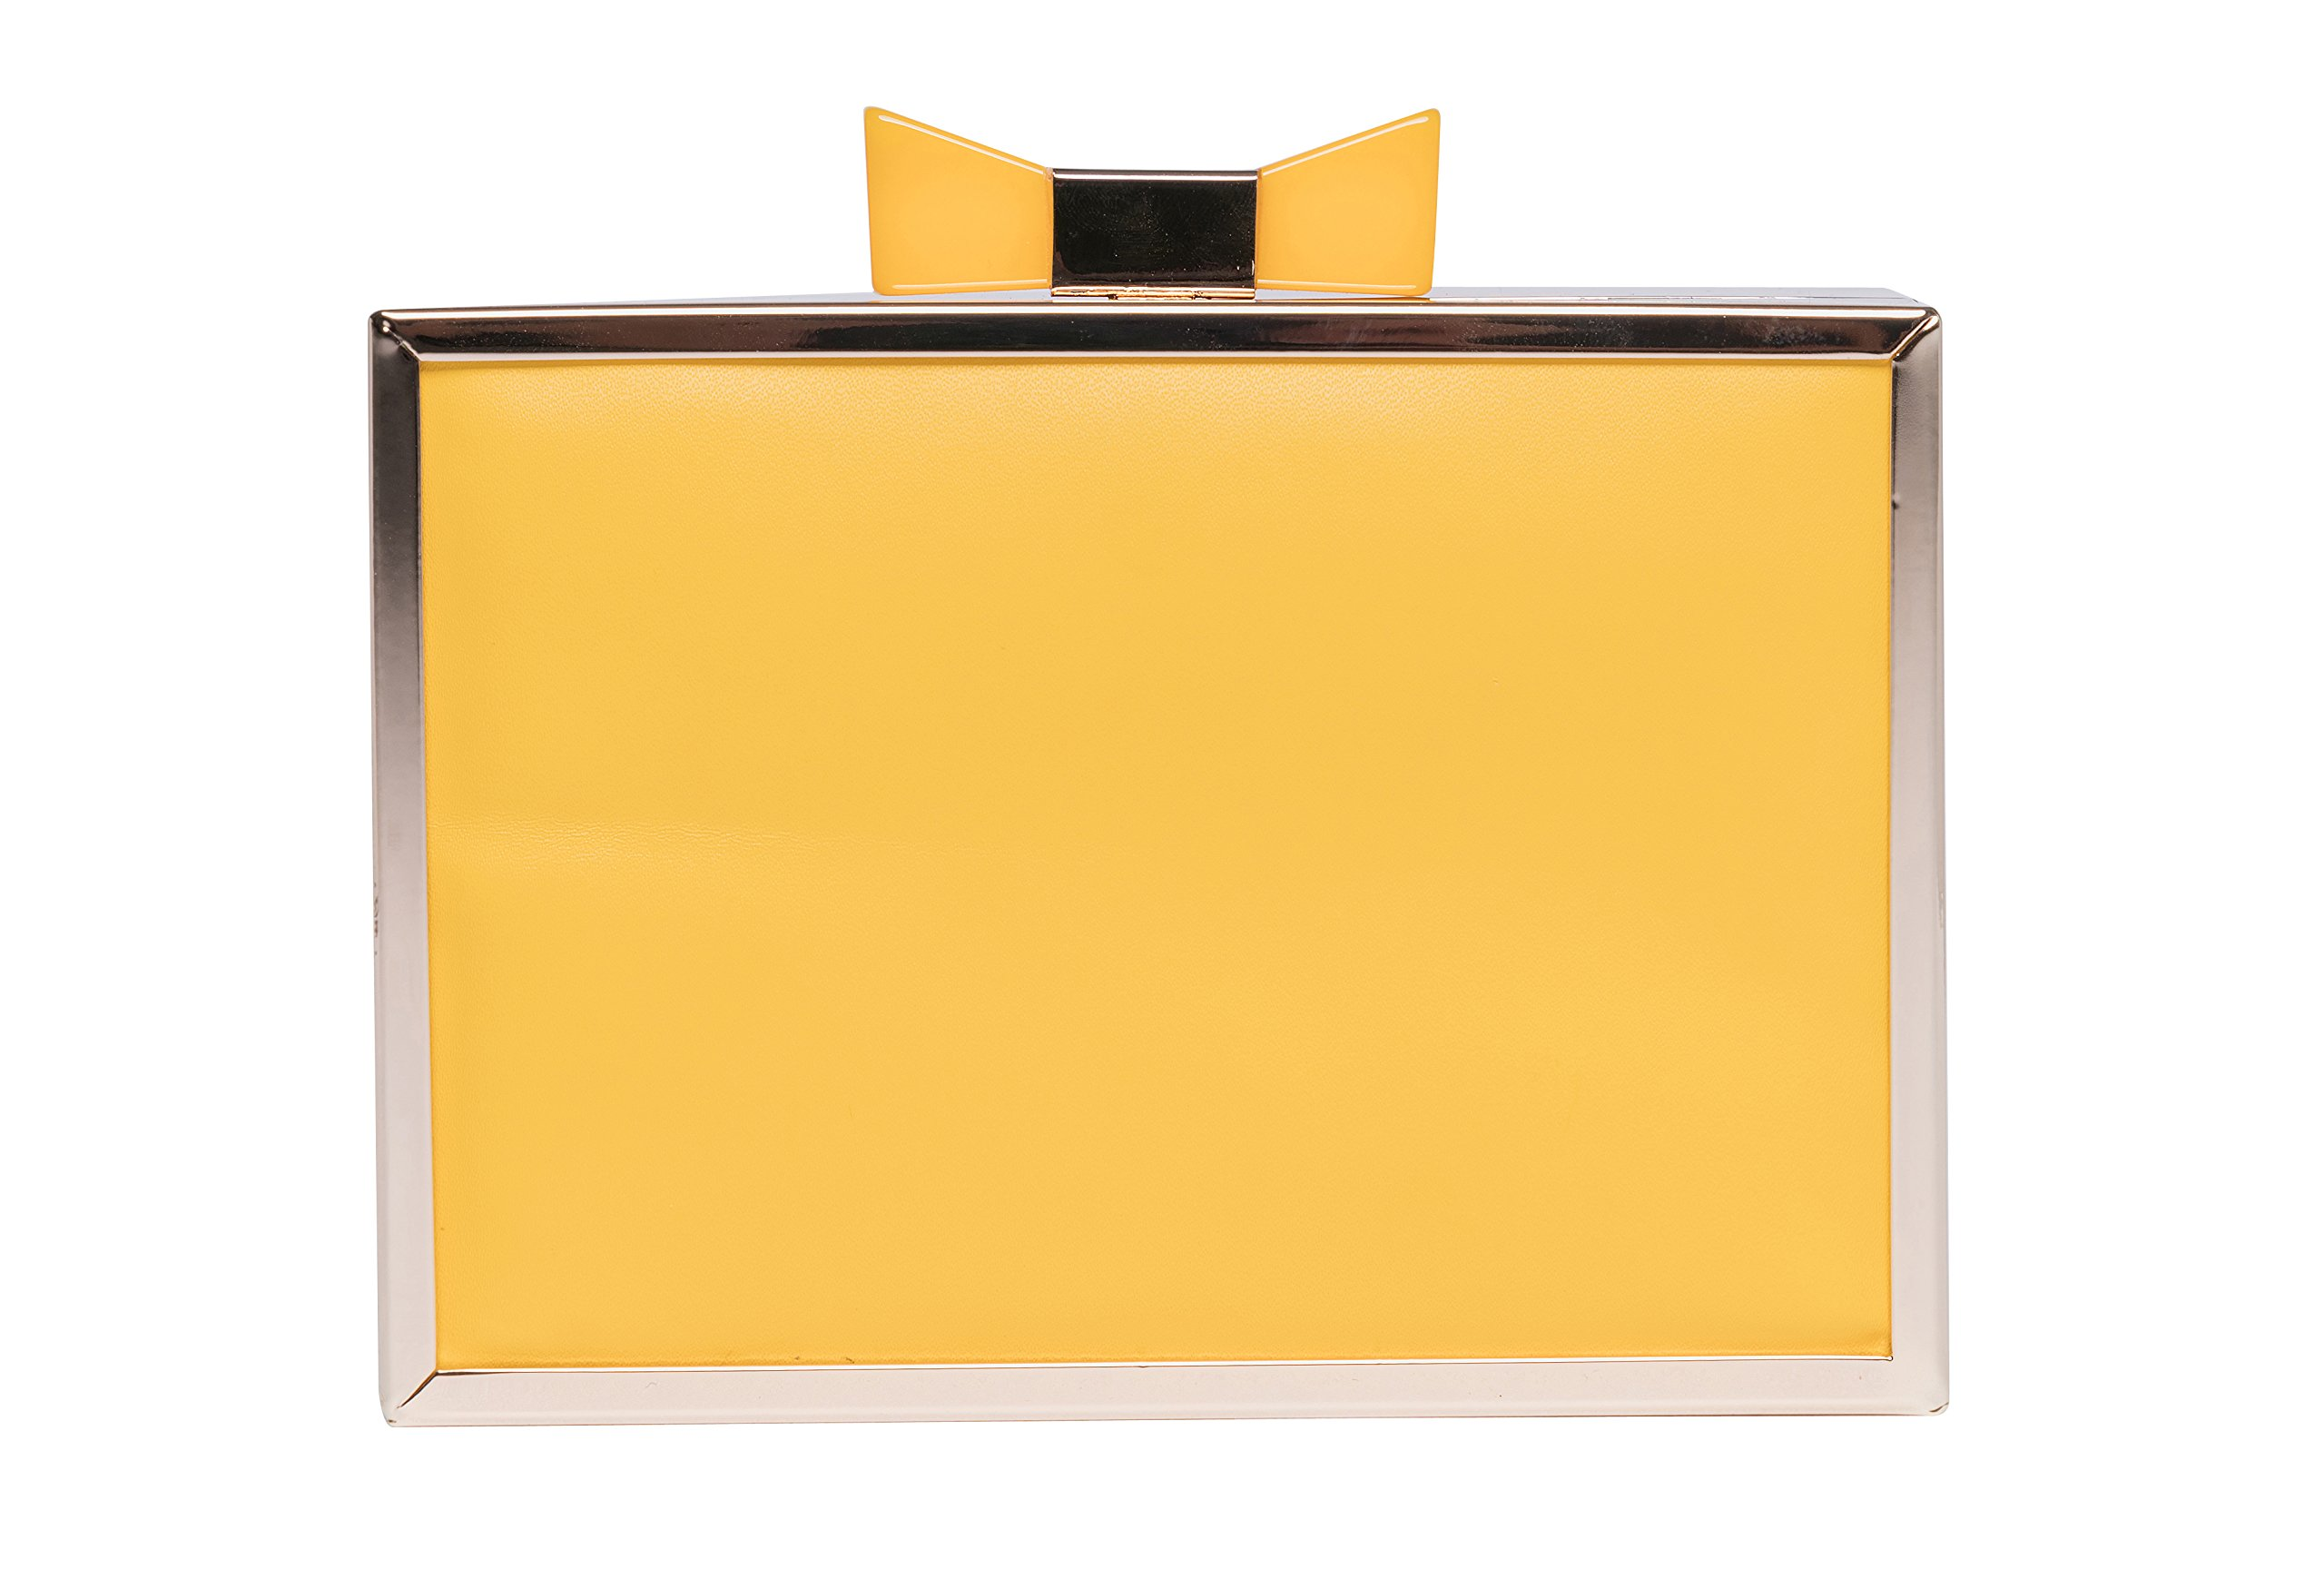 LattLiv Cocktail Purse Cocktail Clutches Acrylic Fashionable Evening Shoulder Bags Ideal Gift for Ladies - Yellow